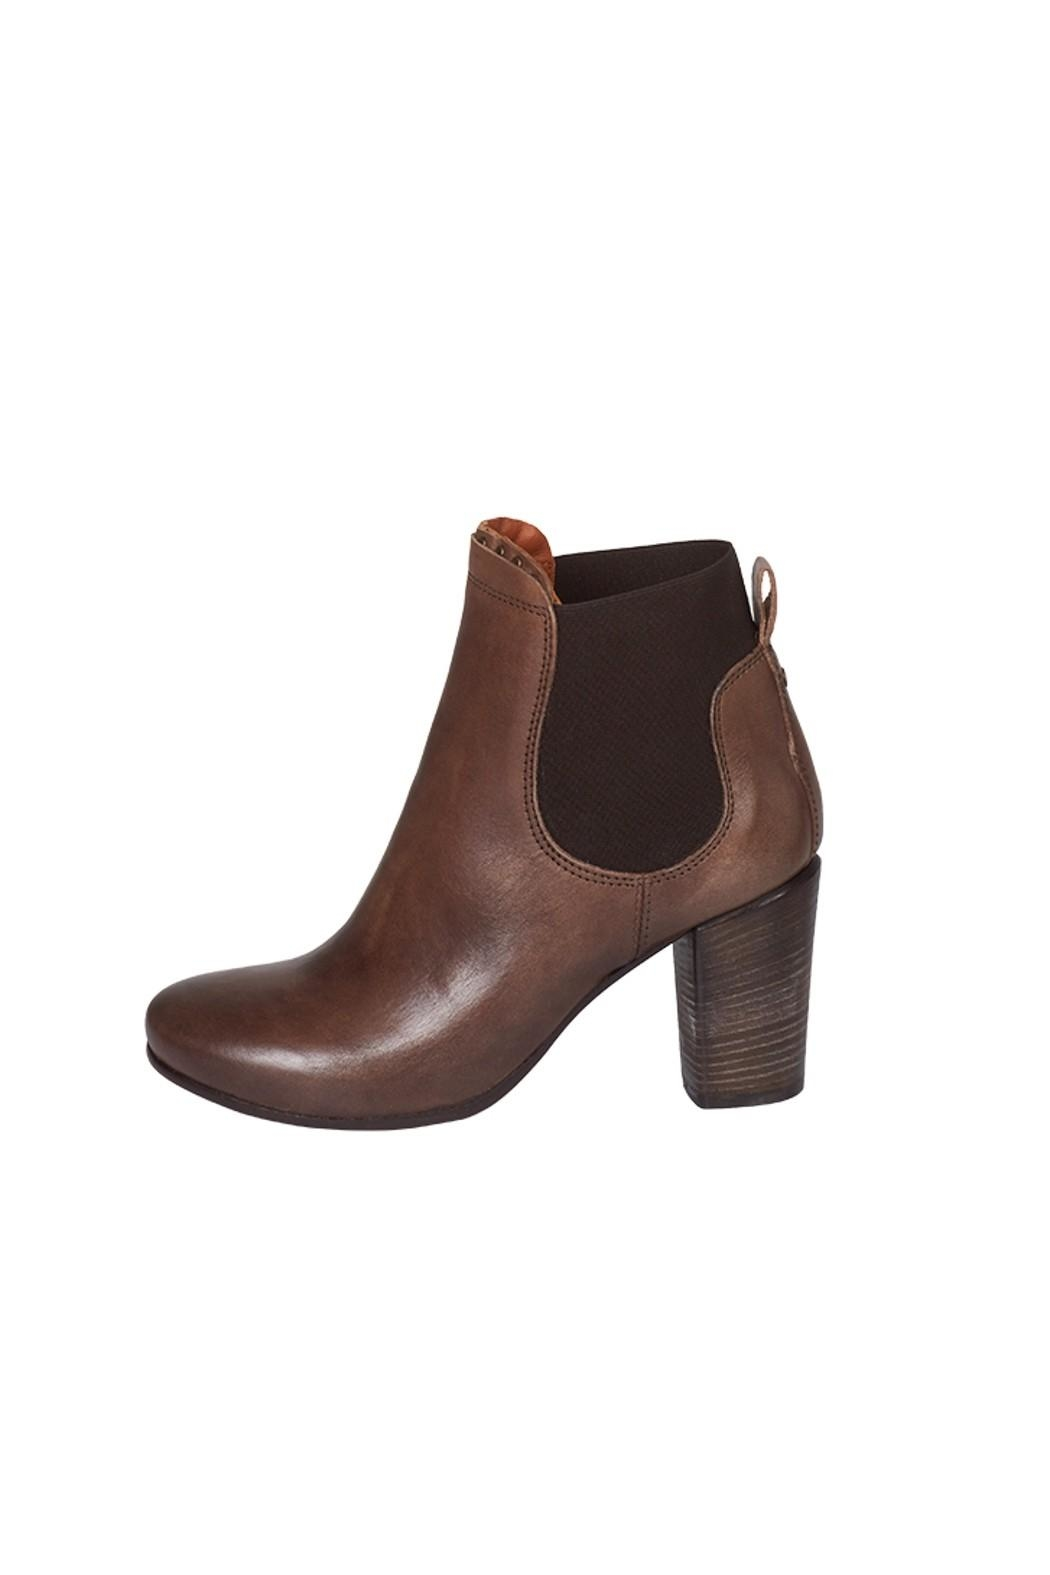 Lady Doc Heeled, Ankle, Brown - Main Image